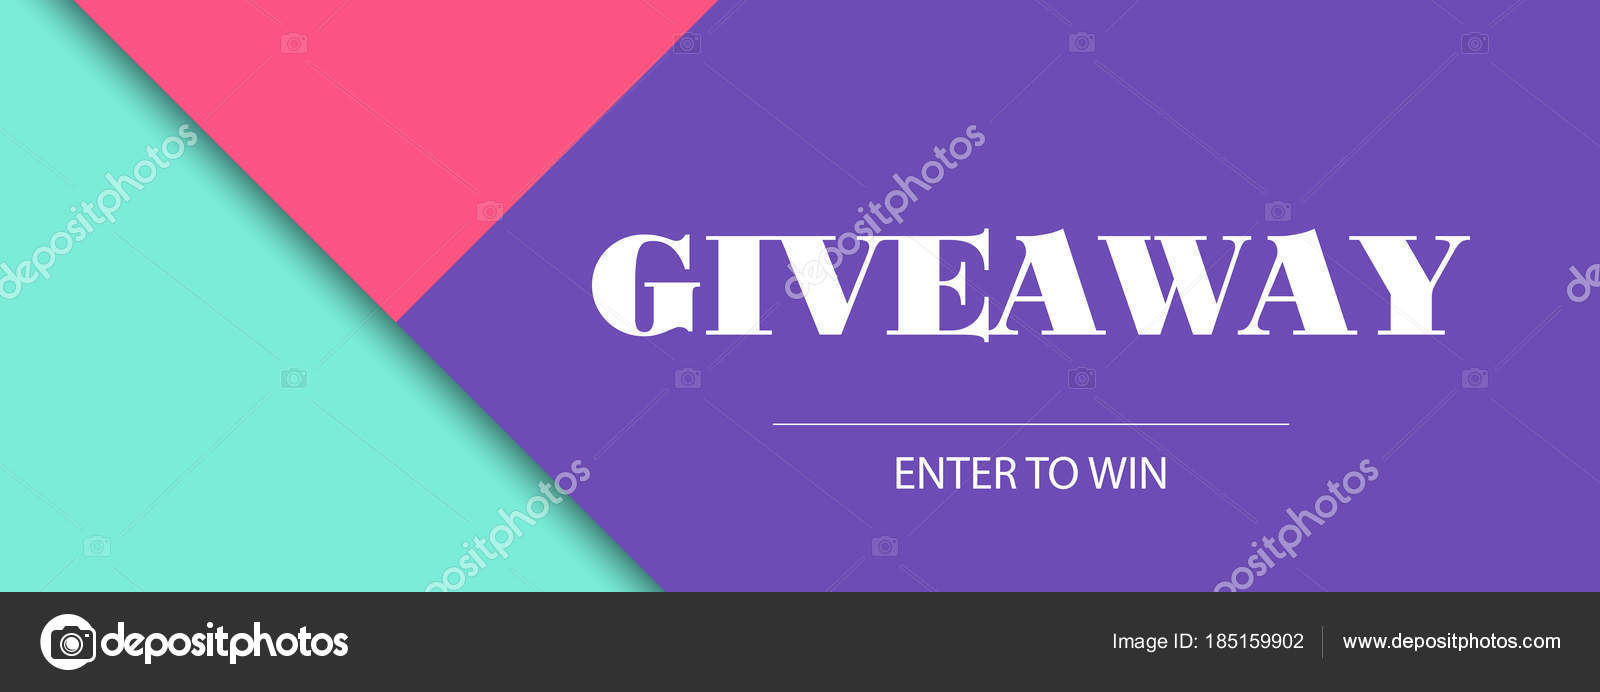 Giveaway Banner Vector Design Template Facebook Cover Size Stock